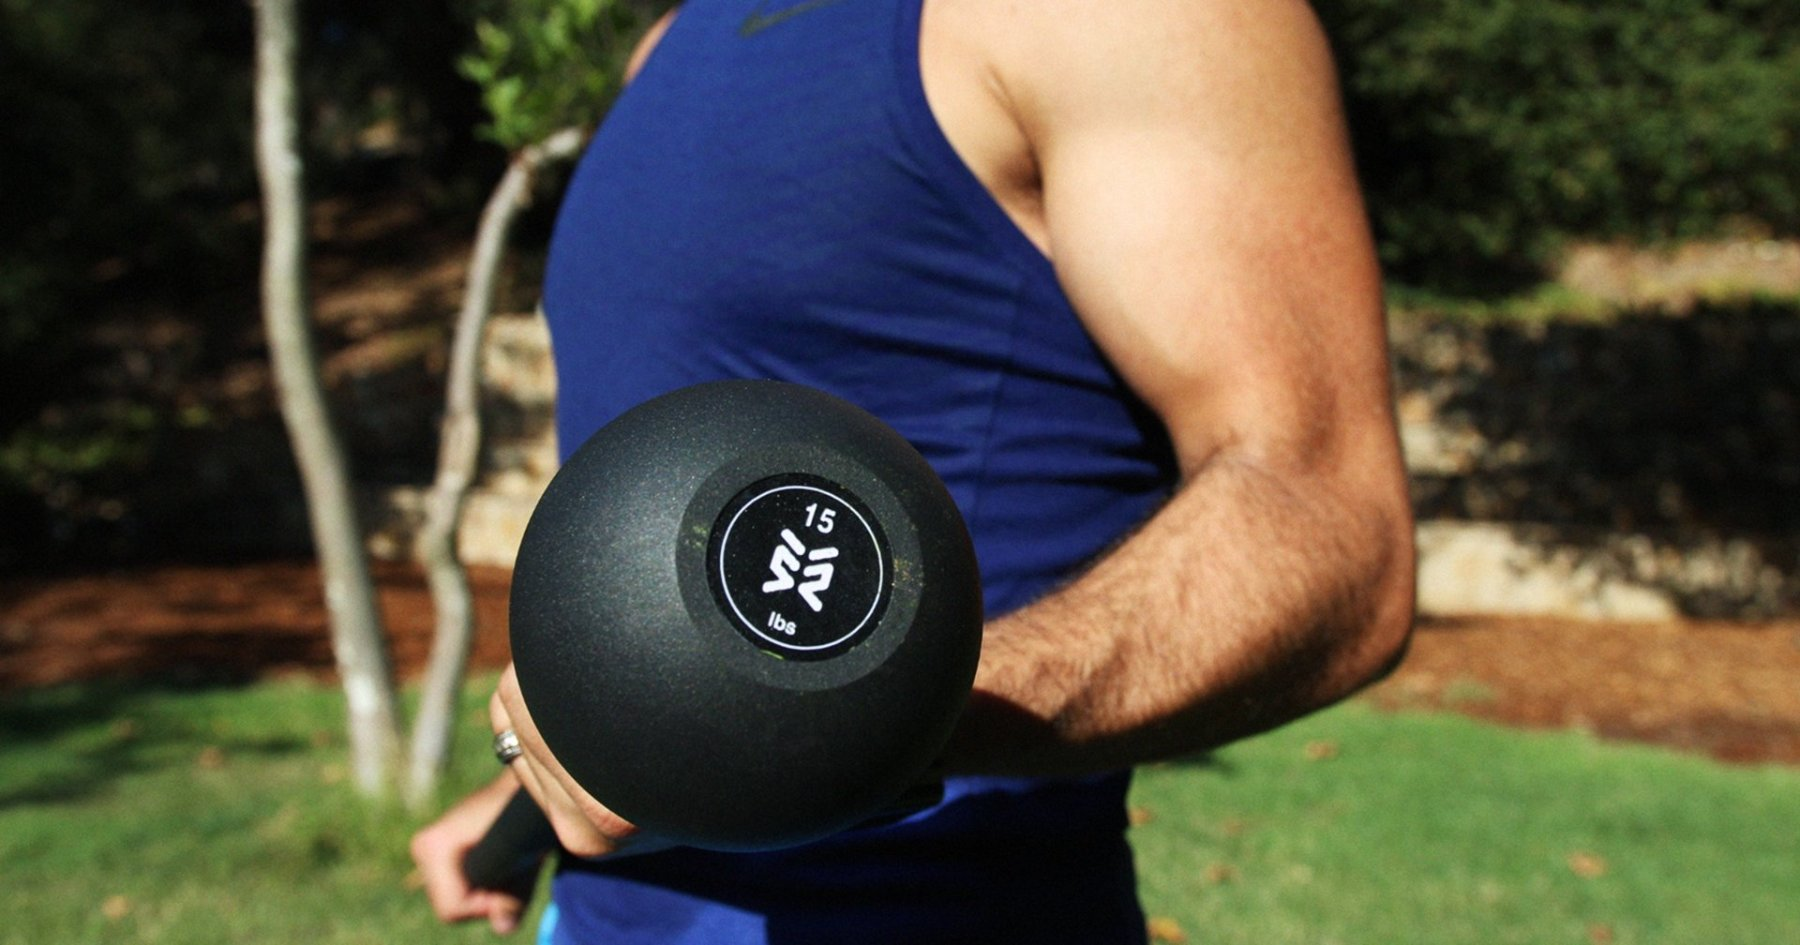 The Layman's Guide to Working Out With a Freaking Mace